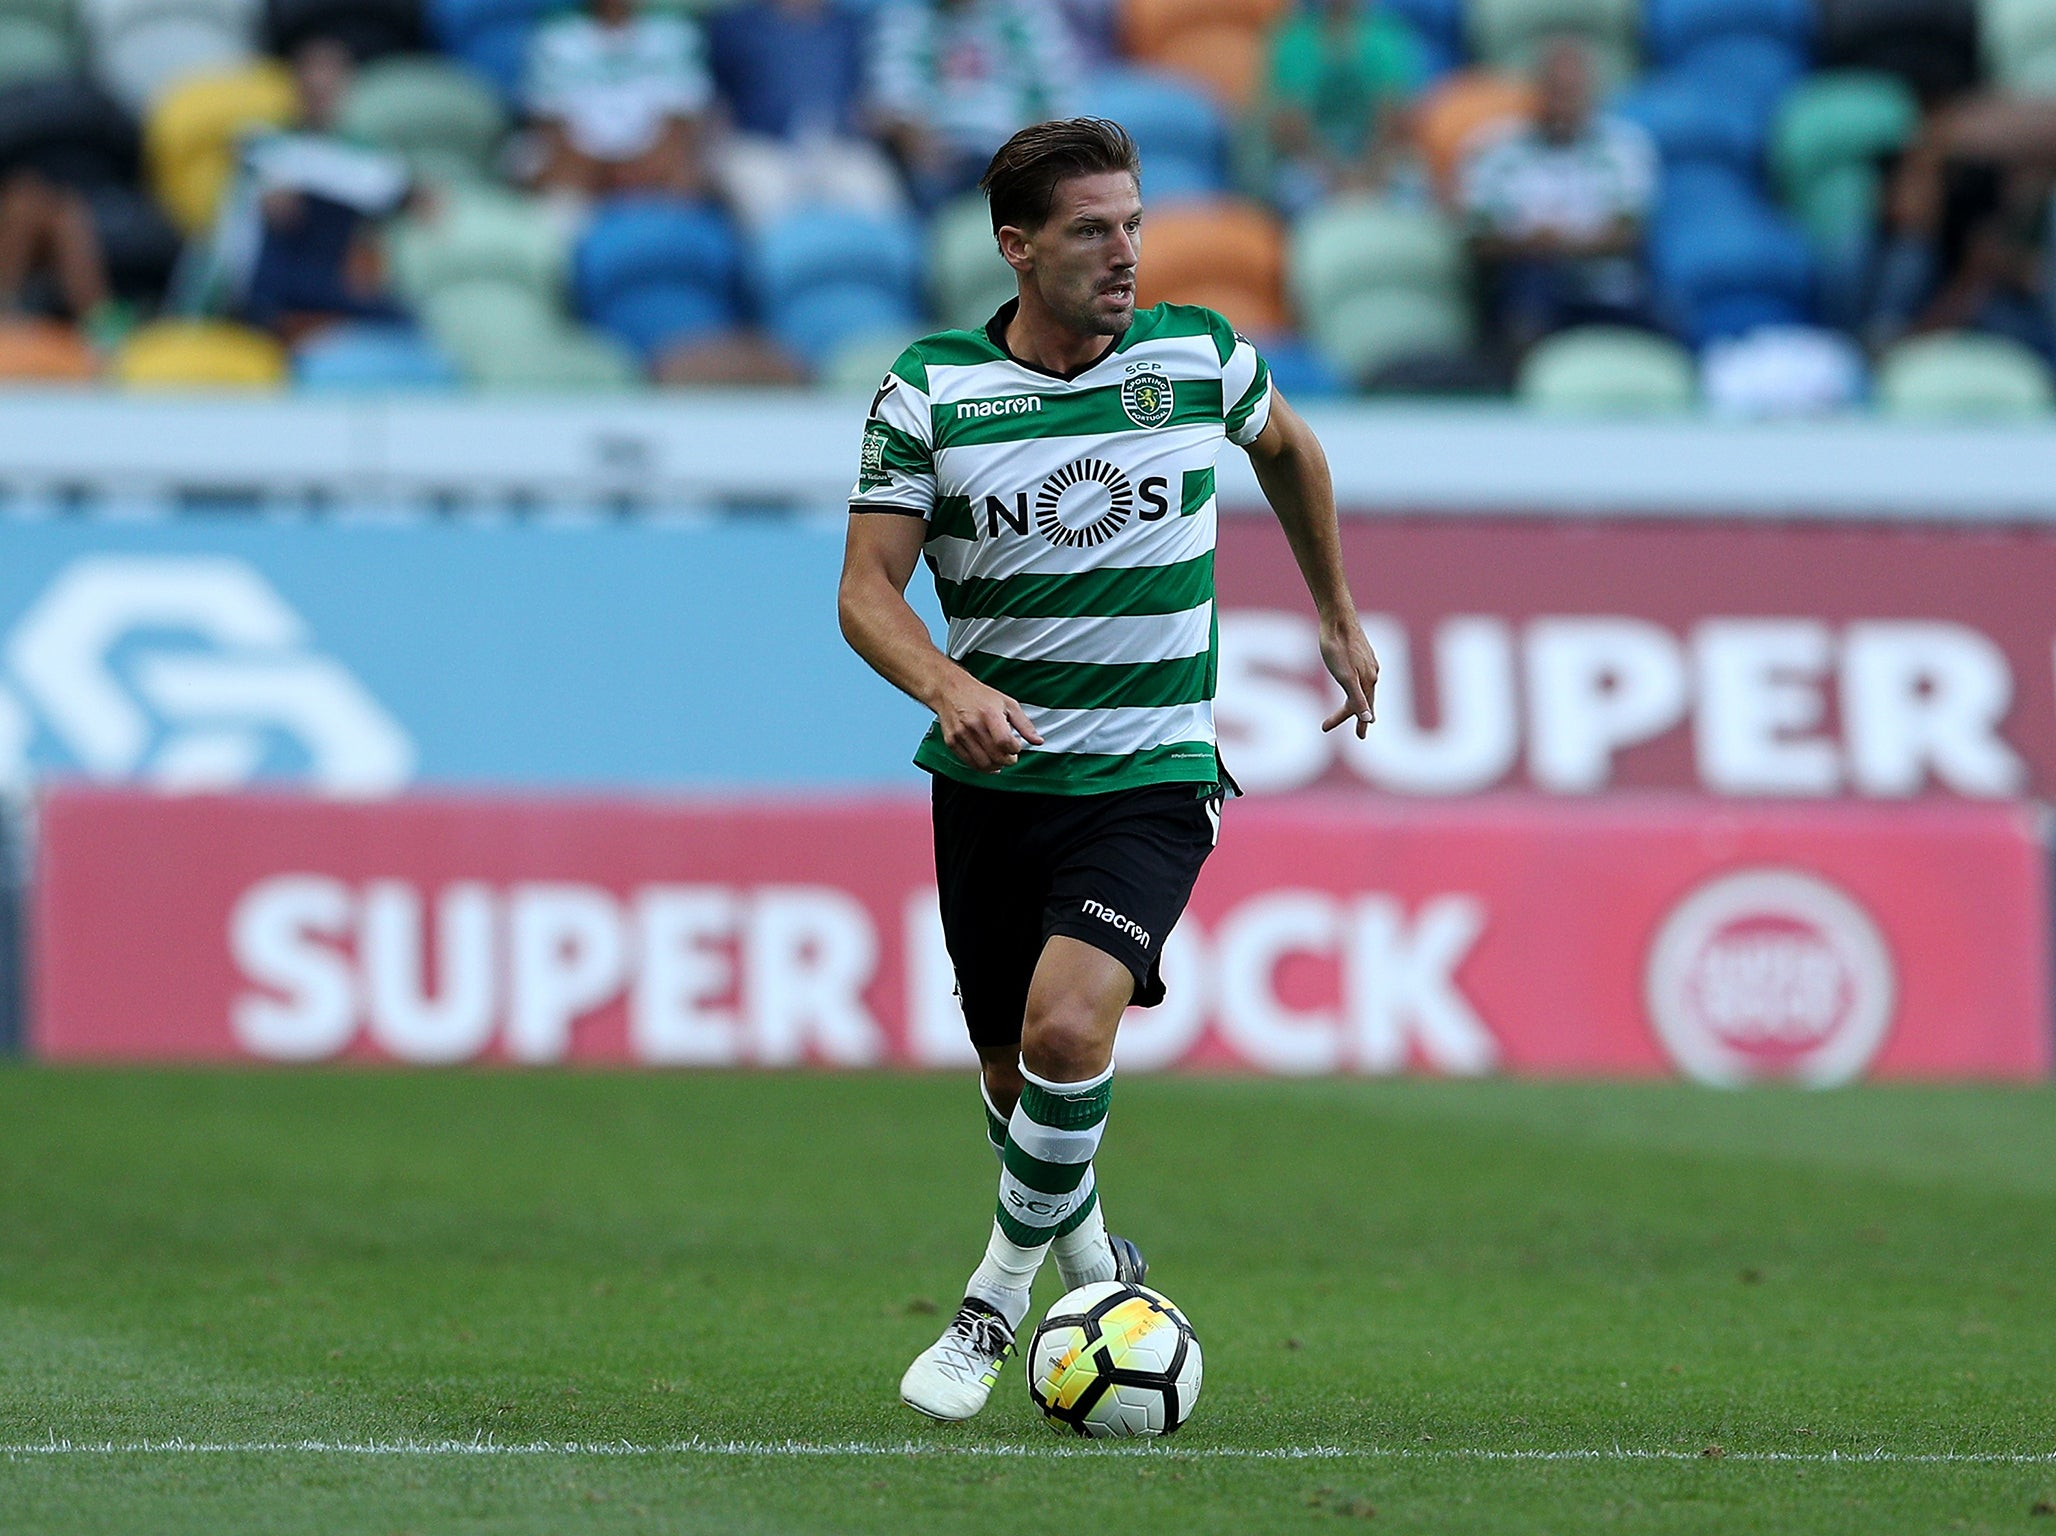 Leicester City sign Adrien Silva in £22m deal 20 hours after